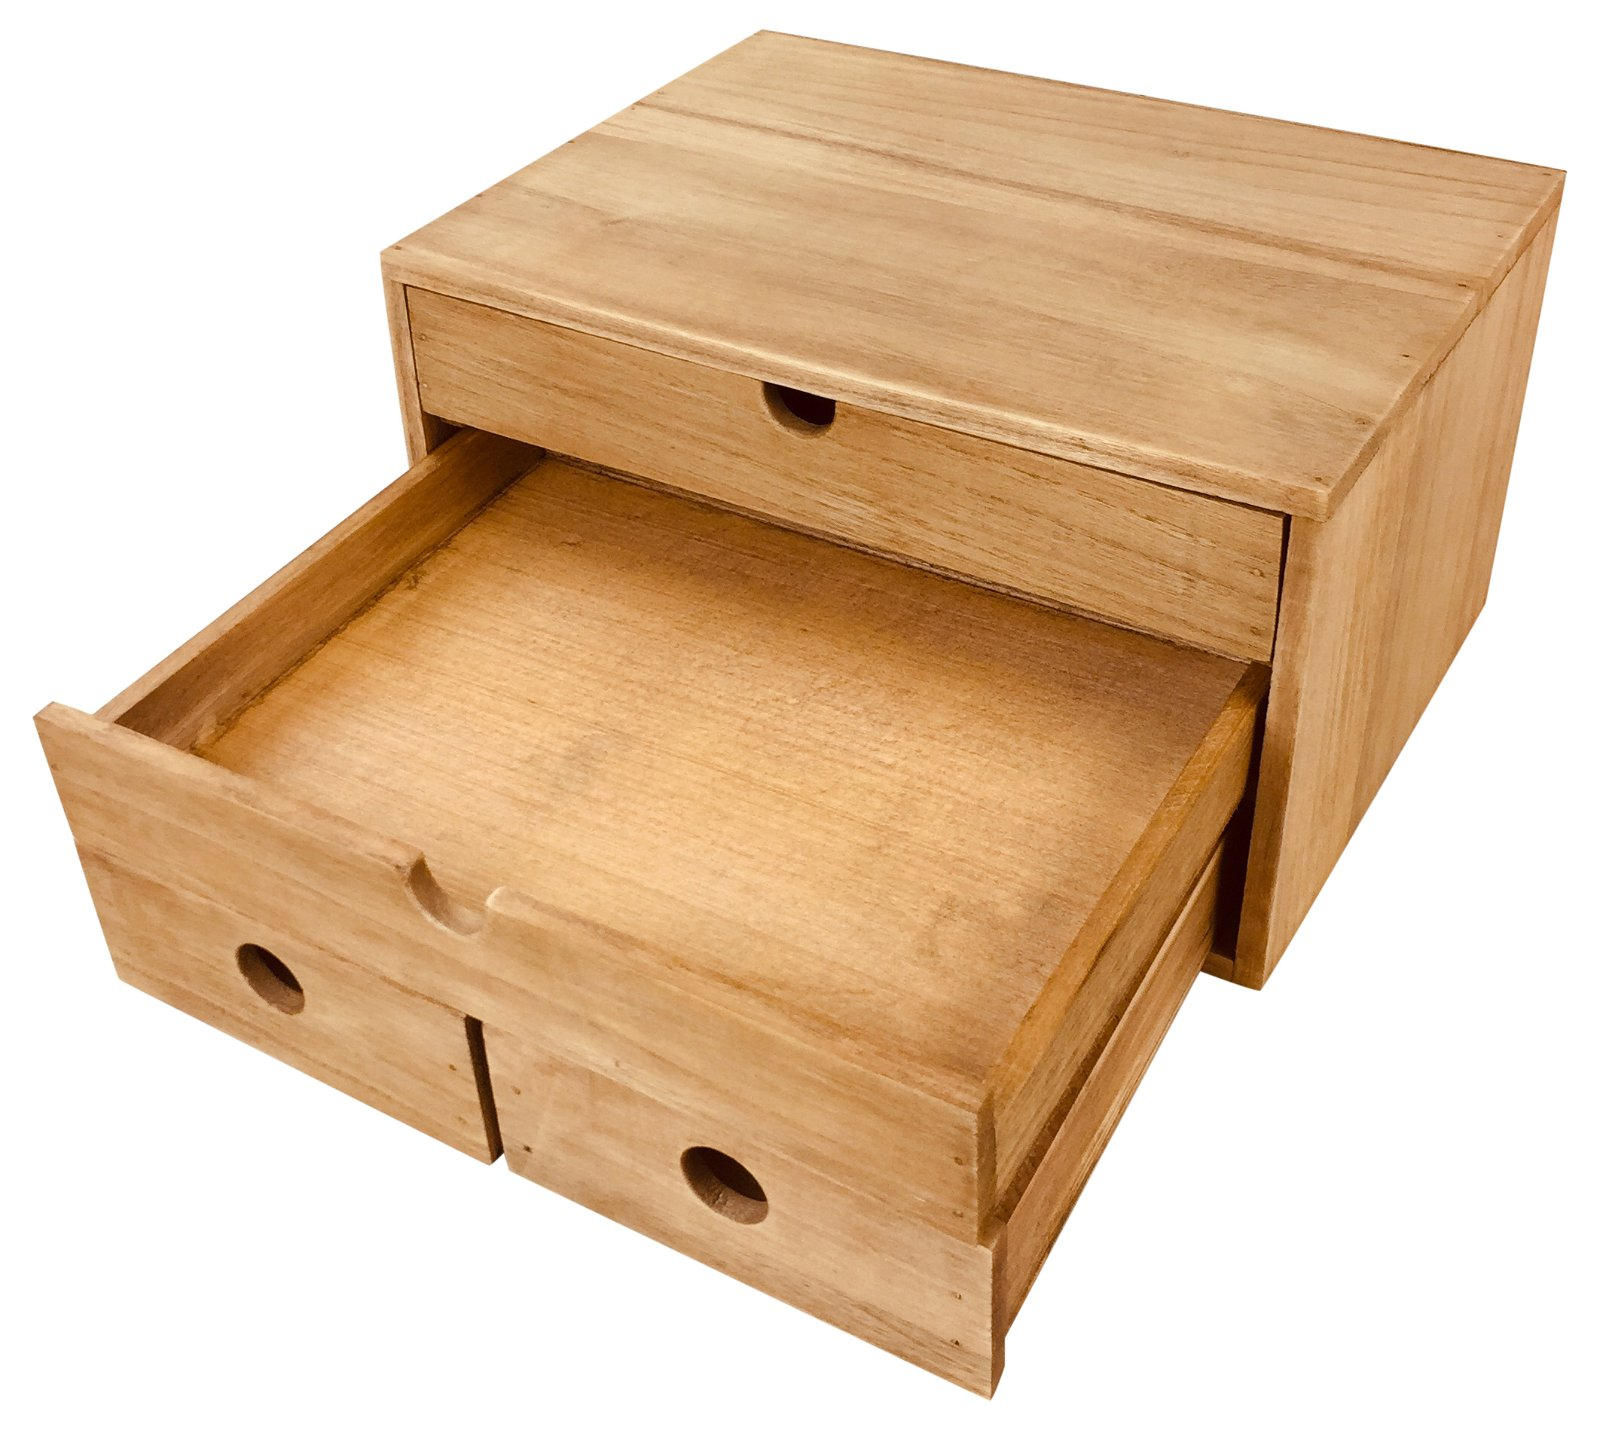 Rustic Solid Wood Storage Organizer 33cm